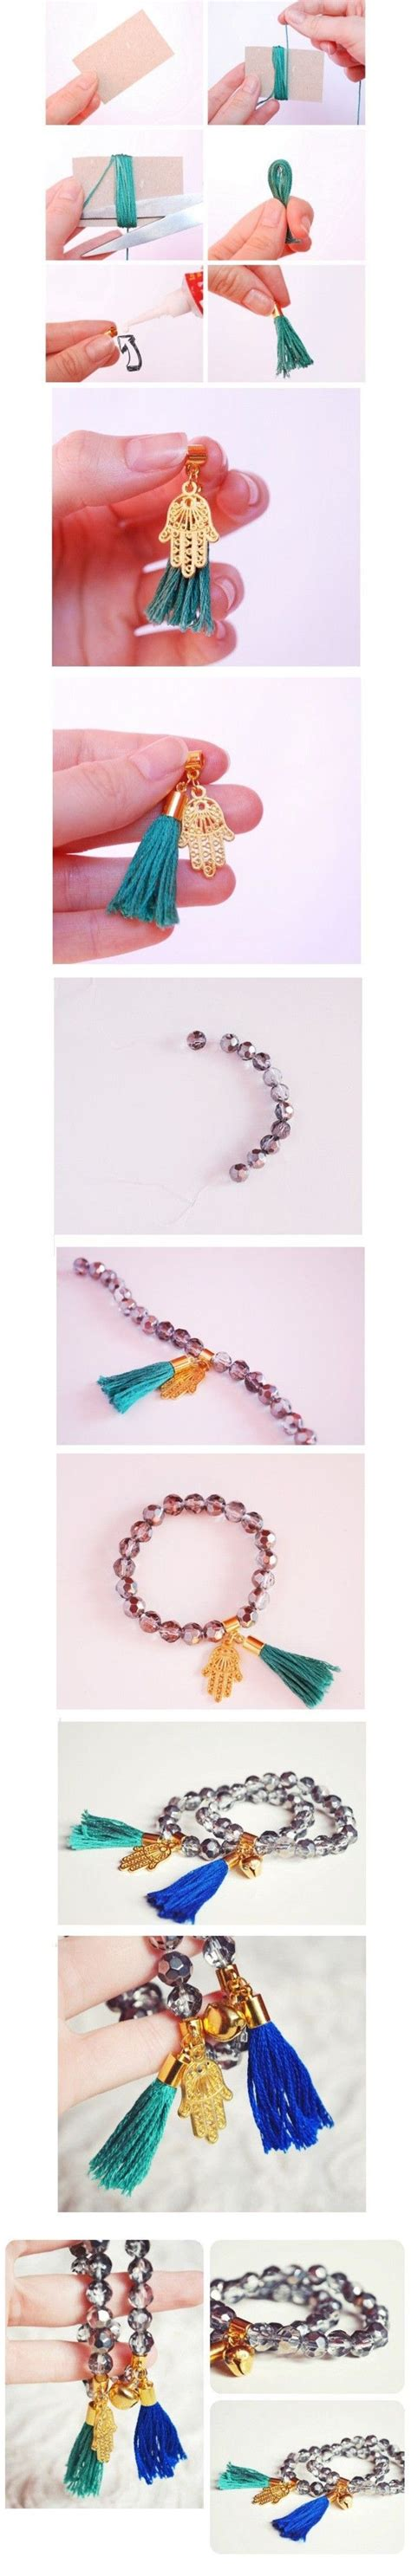 Gelang 8 Gold Tassel Bracelet diy silver and gold bracelets with tassels diy creative ideas craft accessories